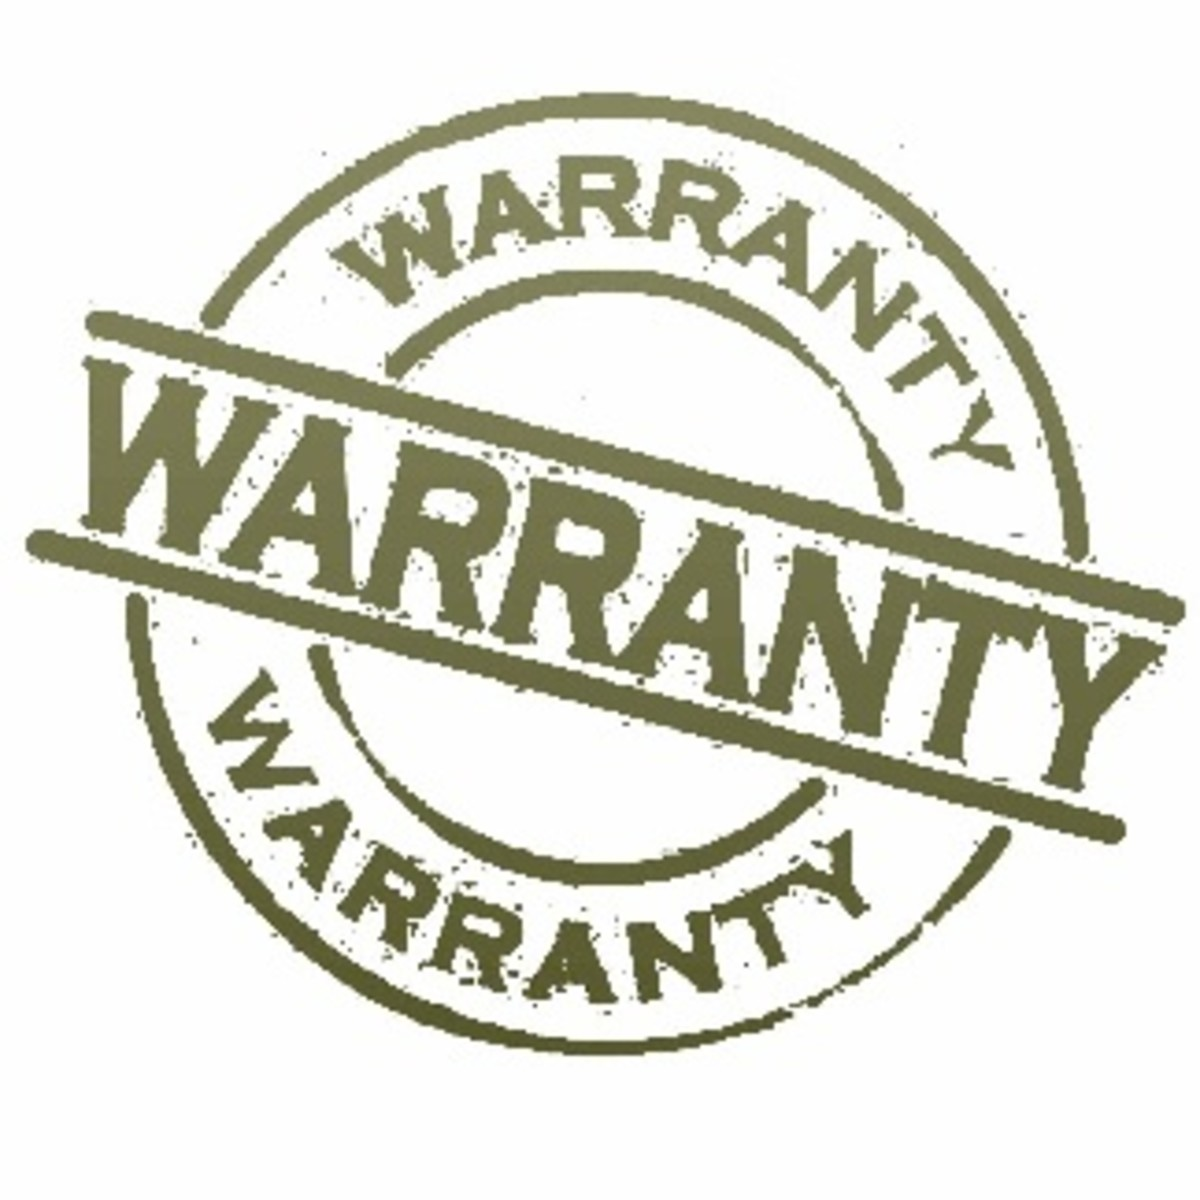 We usually think of warranties as a type of buyer protection, whereas in most cases, they exist to protect sellers.